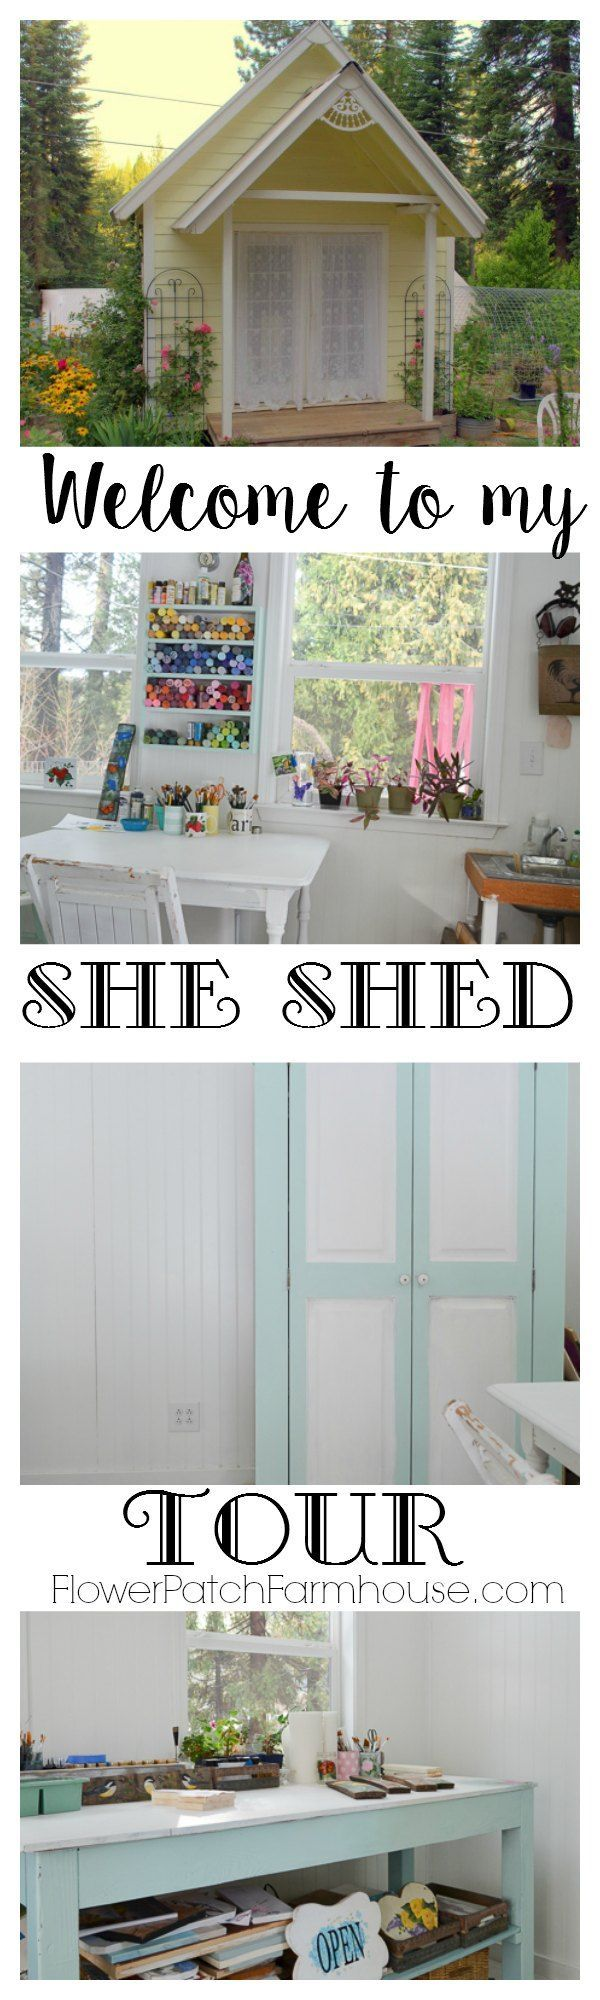 A Fantastic She Shed For Dreaming, Creating And